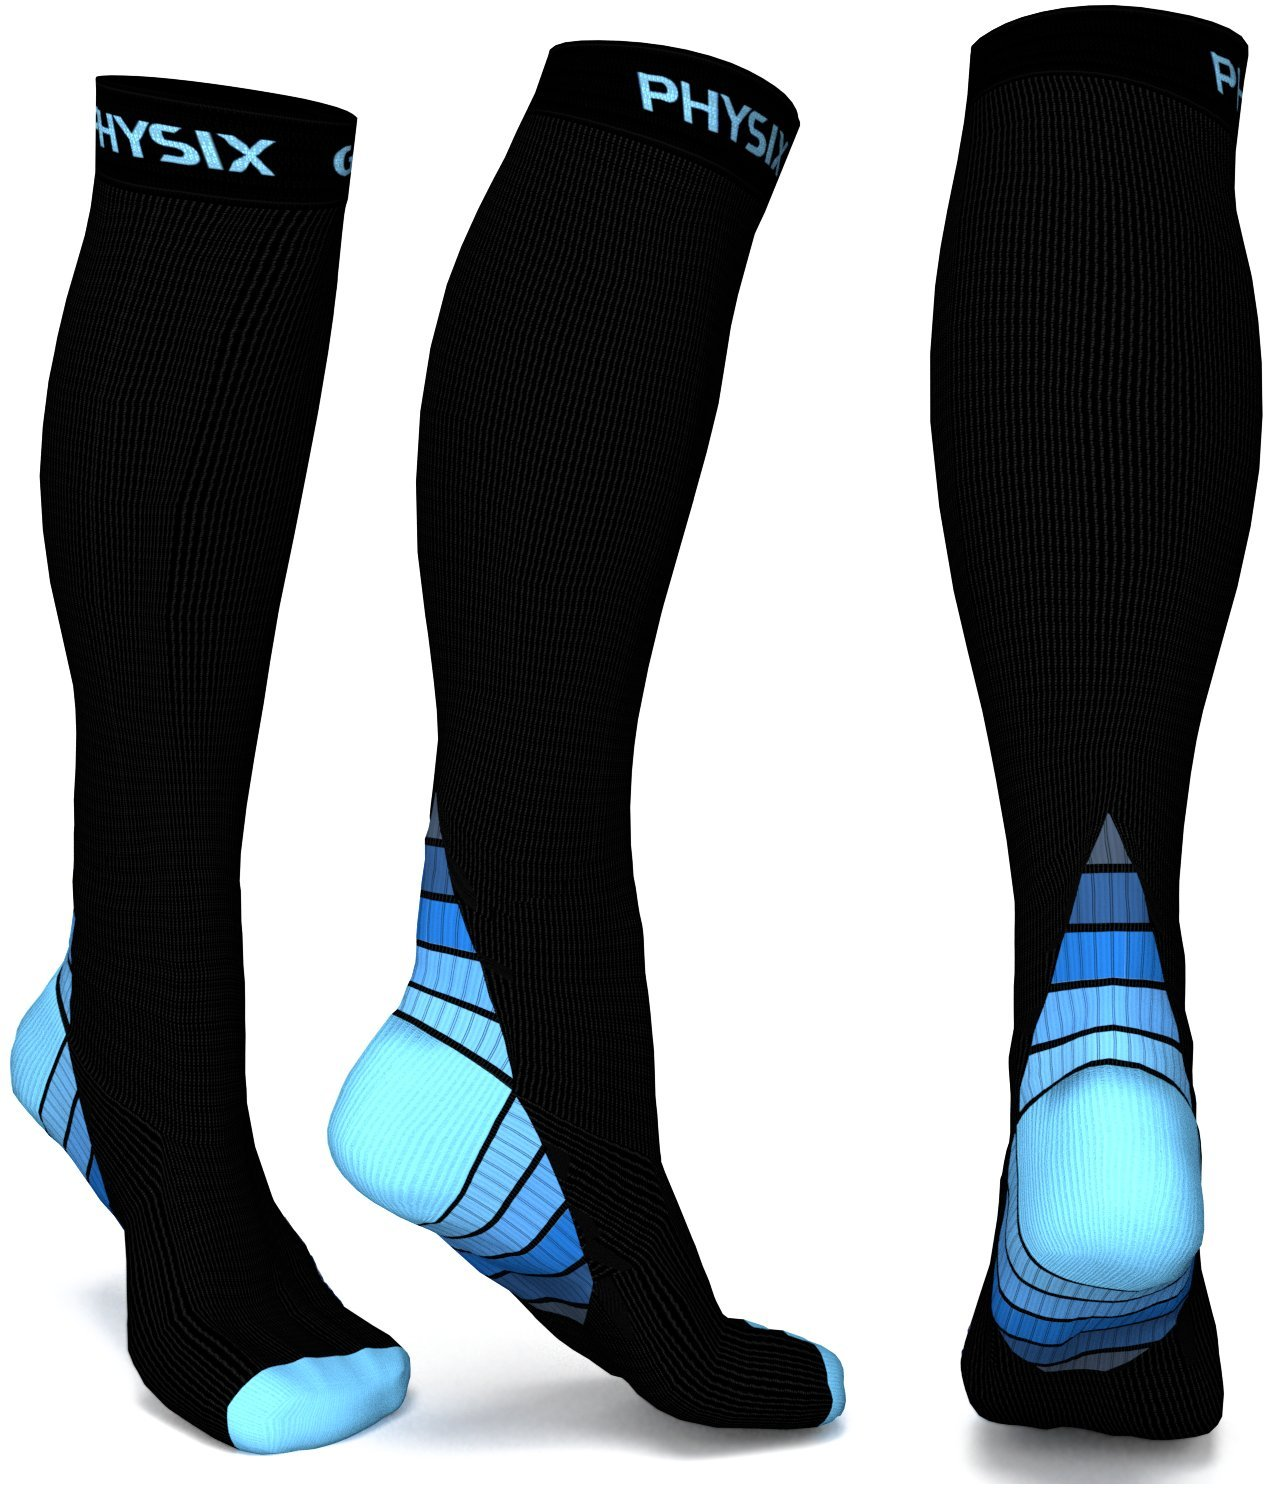 Physix Gear Compression Socks for Men & Women (20-30 mmHg) Best Graduated Athletic Fit for Running, Nurses, Shin Splints, Flight Travel & Maternity Pregnancy – Boost Stamina, Circulation & Recovery